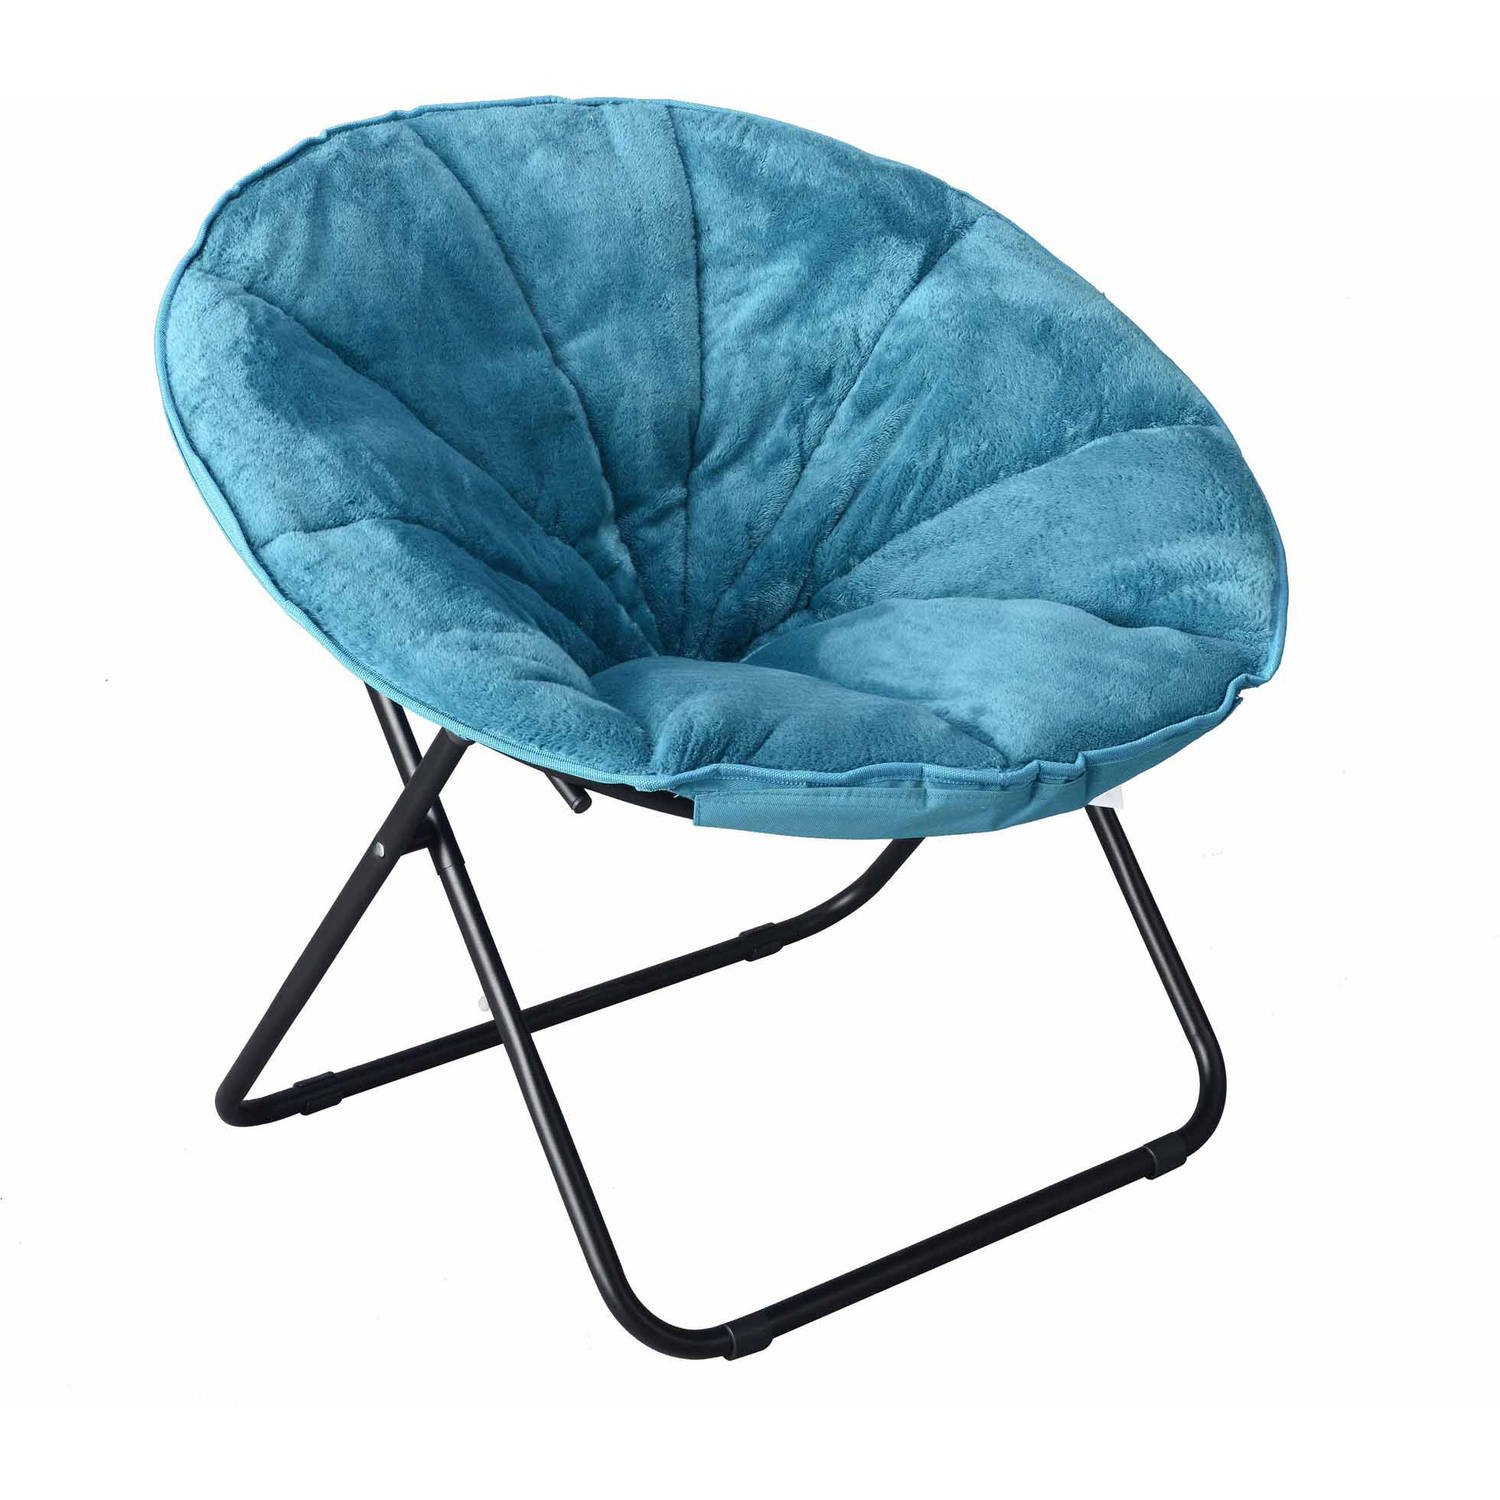 Teal Comfortable Faux Fur Plush Folding Saucer Chair